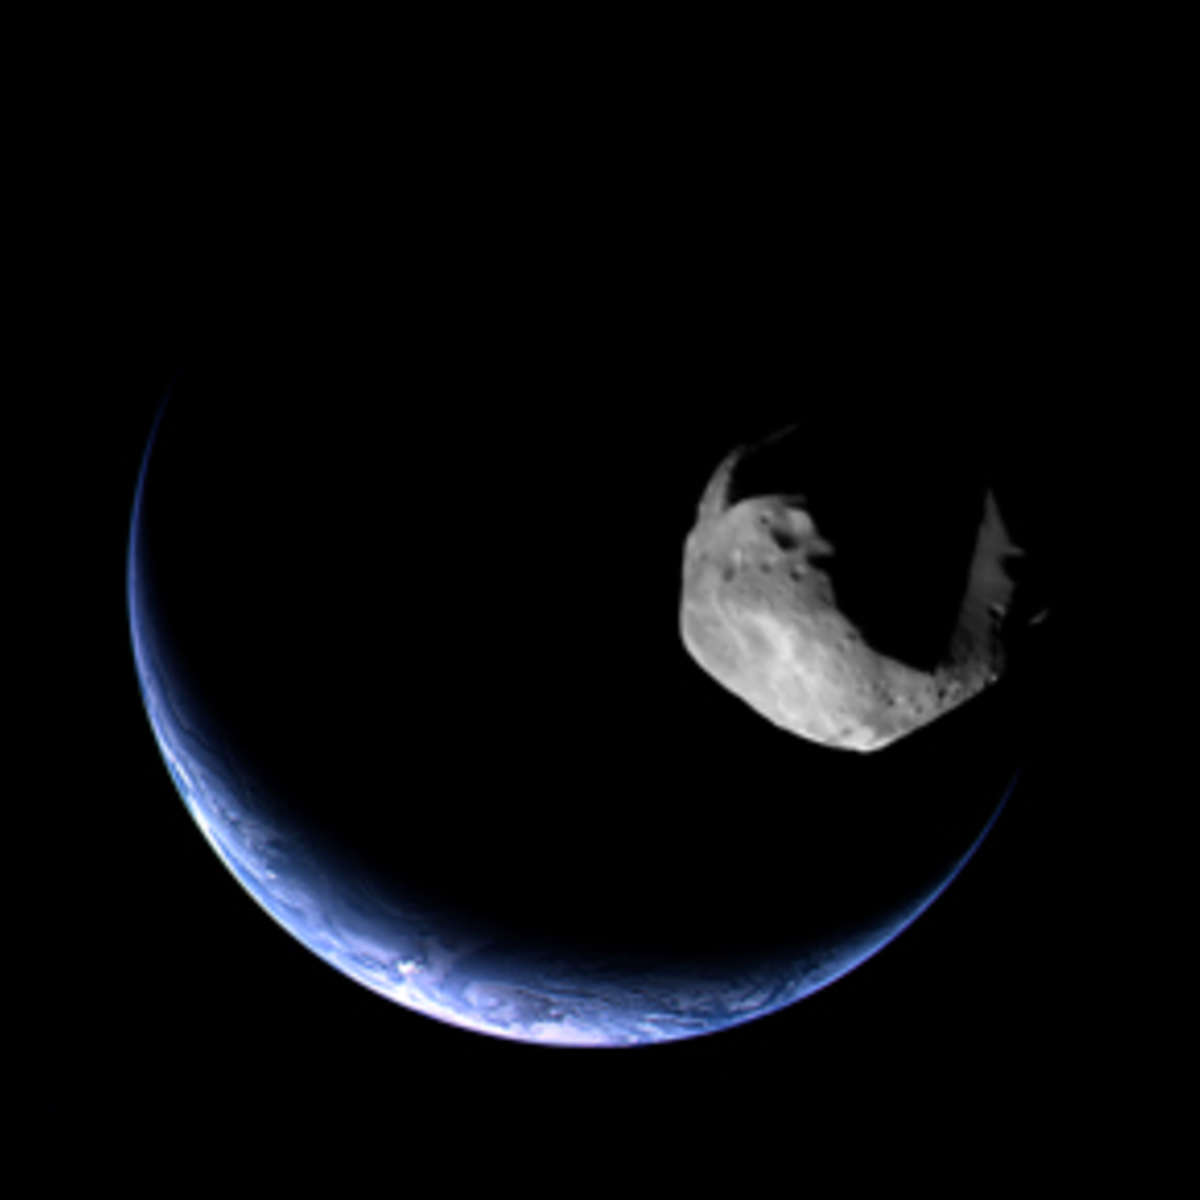 near_earth_asteroid_icon_6.jpg